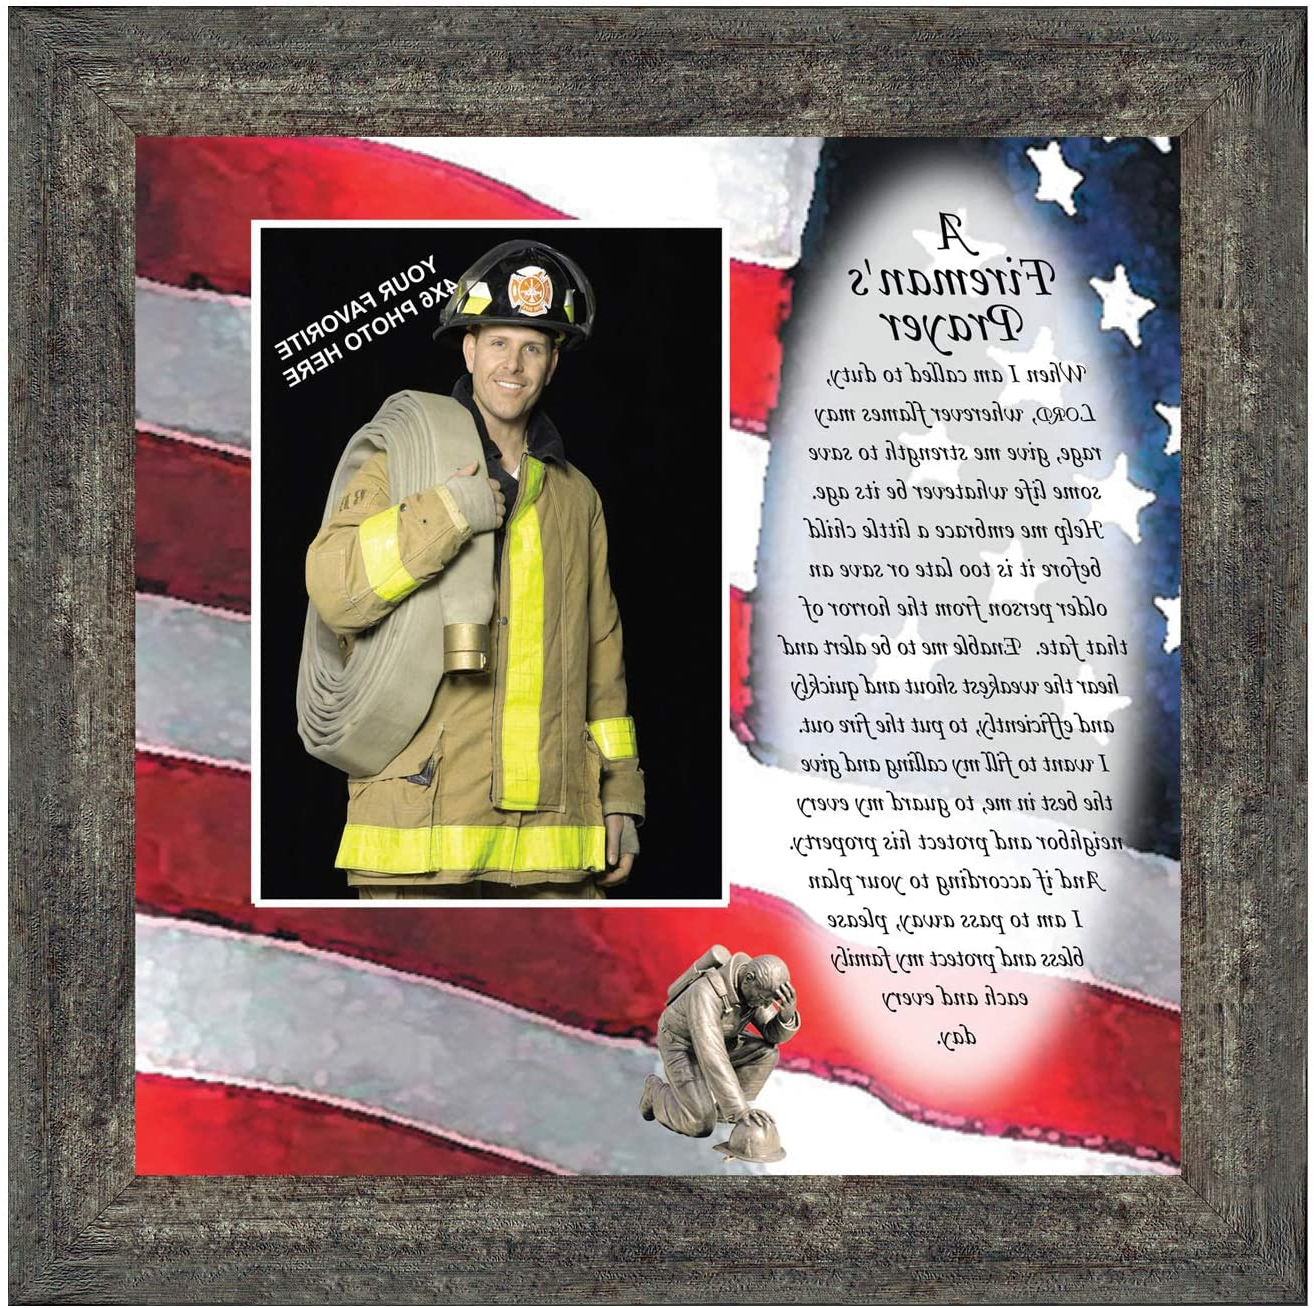 A Fireman Prayer Wall Hangings Pertaining To Fashionable Firefighter Gifts For Men And Women, Fire Academy Graduation Gift, Fire Fighter Gifts Or Firehouse Decor, A Fireman's Prayer Framed Wall Art For Home (View 15 of 20)